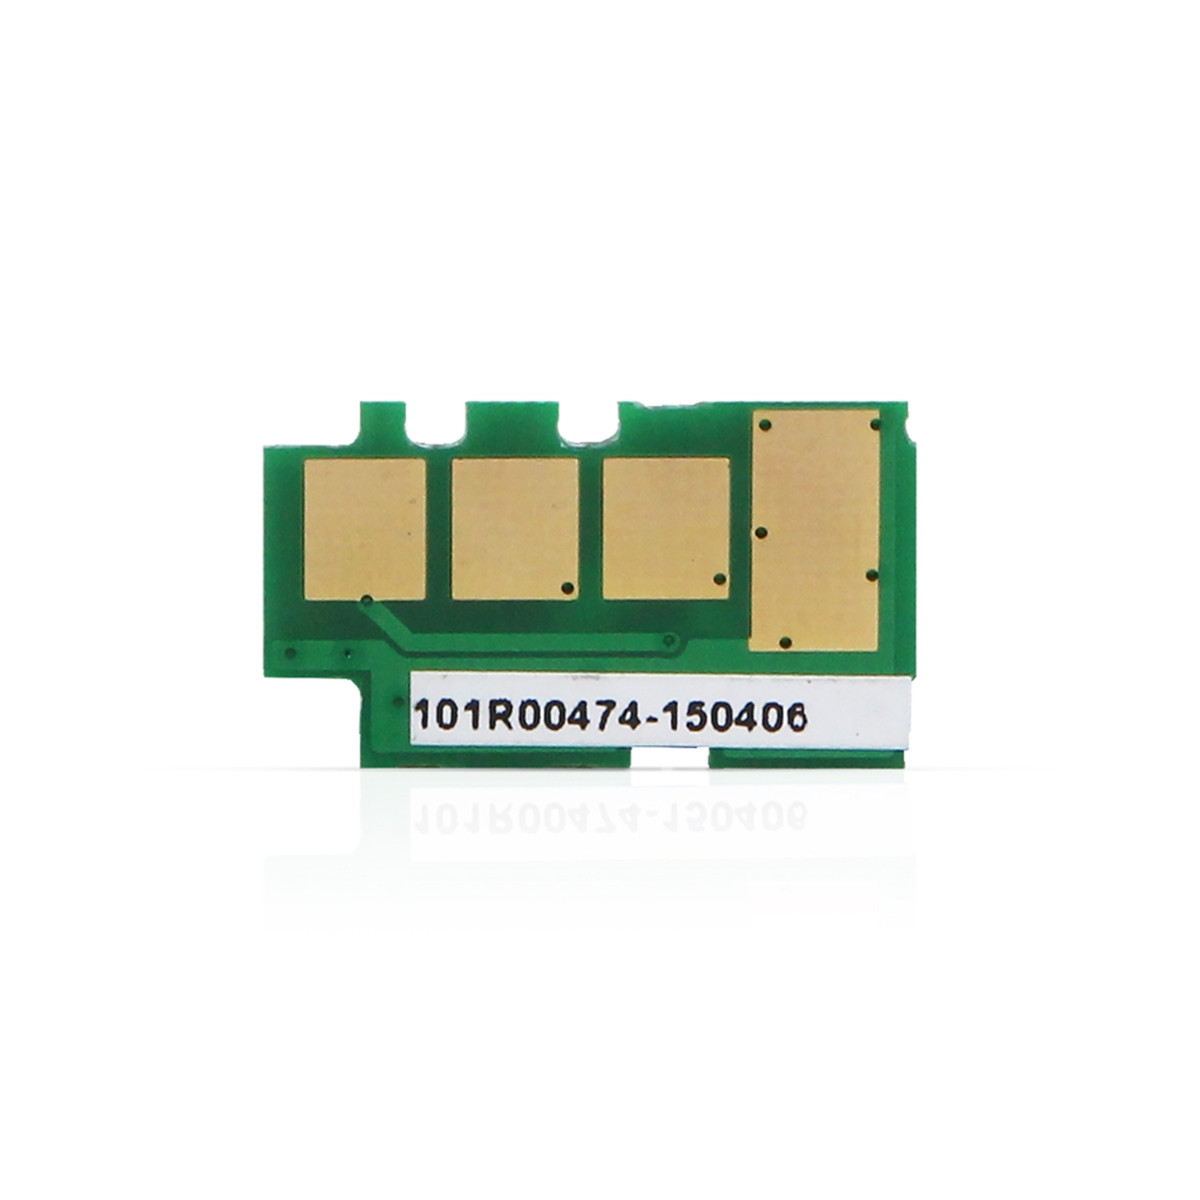 Chip para Cilindro Xerox Phaser 3260 | WC3215 WC3225 | 101R00474 | 10.000 impressões